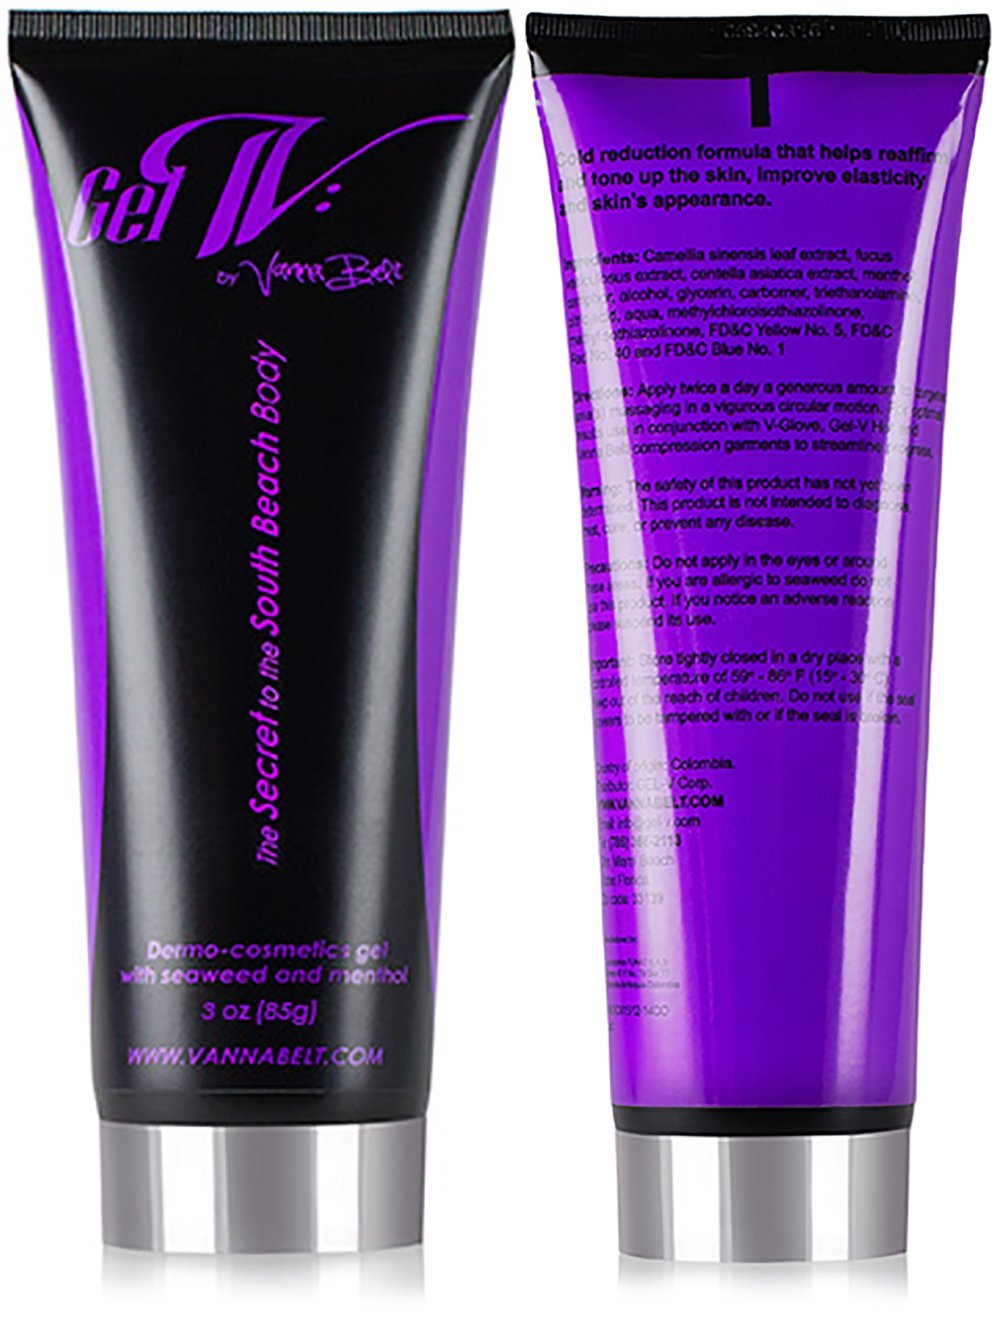 Stretch Marks - Vanna Belt Gel-V Mini - 3 oz - Airplane Approved -Formulated to Fade Stretch Marks -Made to Tighten Sagging Skin -Perfect for Areas That Diet and Exercise Miss (Stomachs, Thighs, Hips)